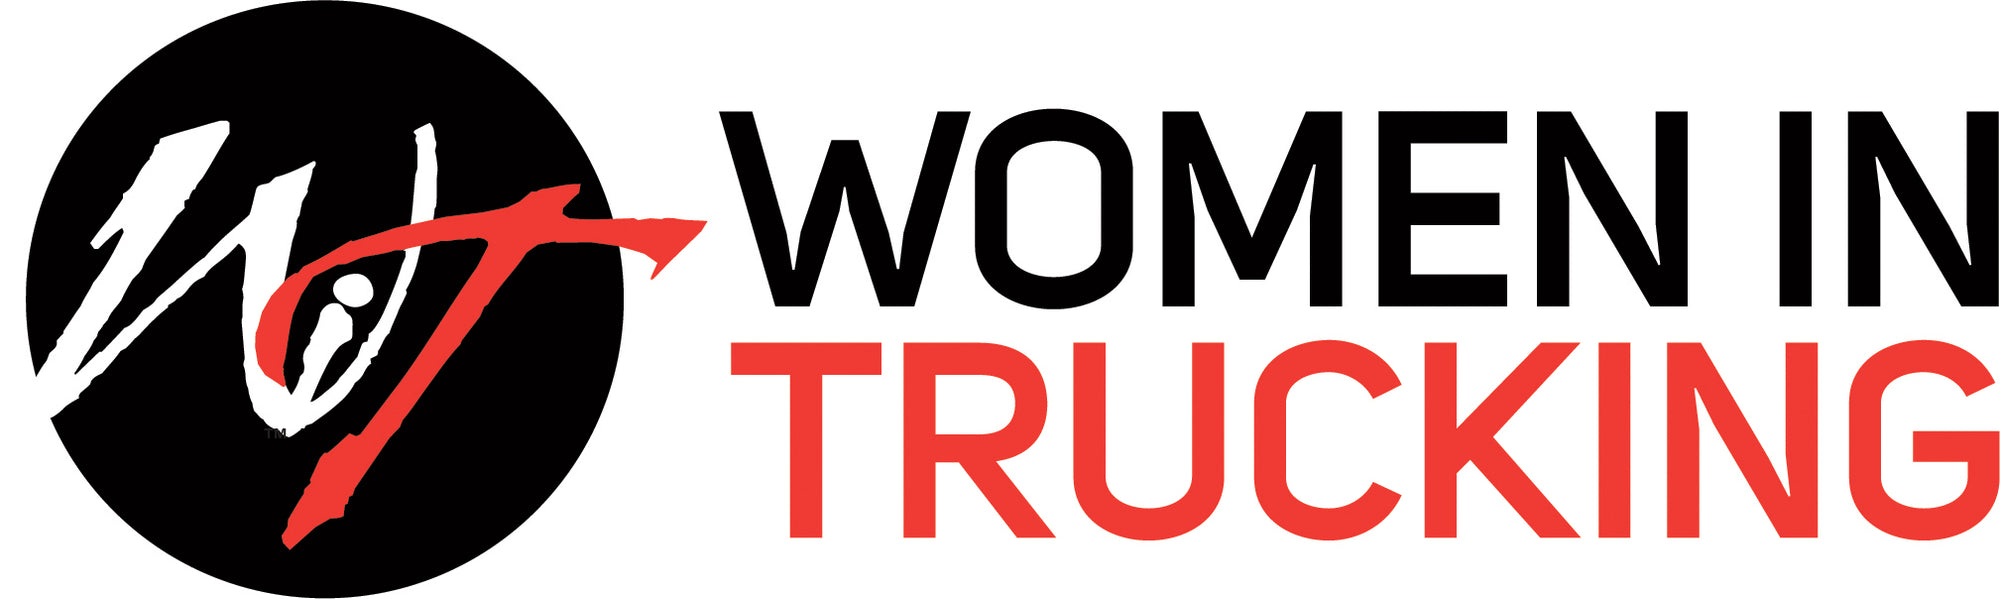 Supporting Women in Trucking